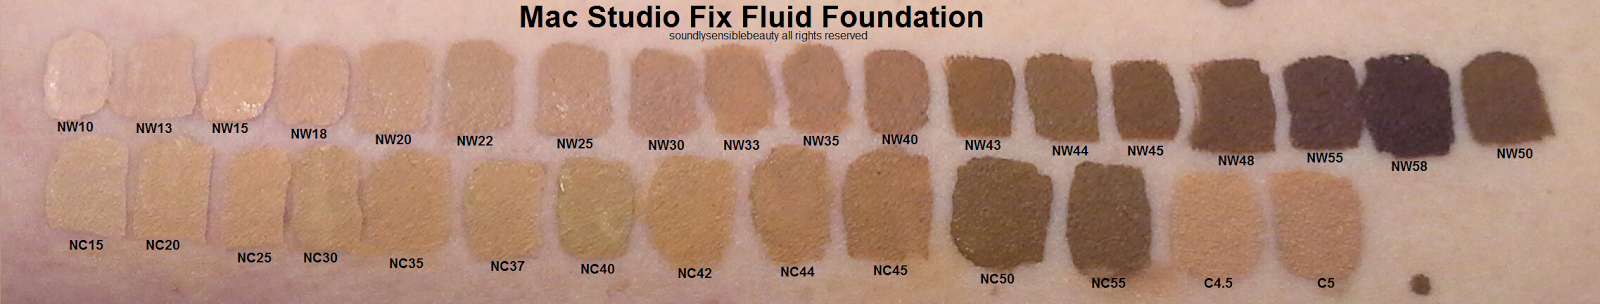 MAC Studio Fix Foundation Swatches from Soundly Sensible Beauty - 'But don't you ~want~ a little more color?'